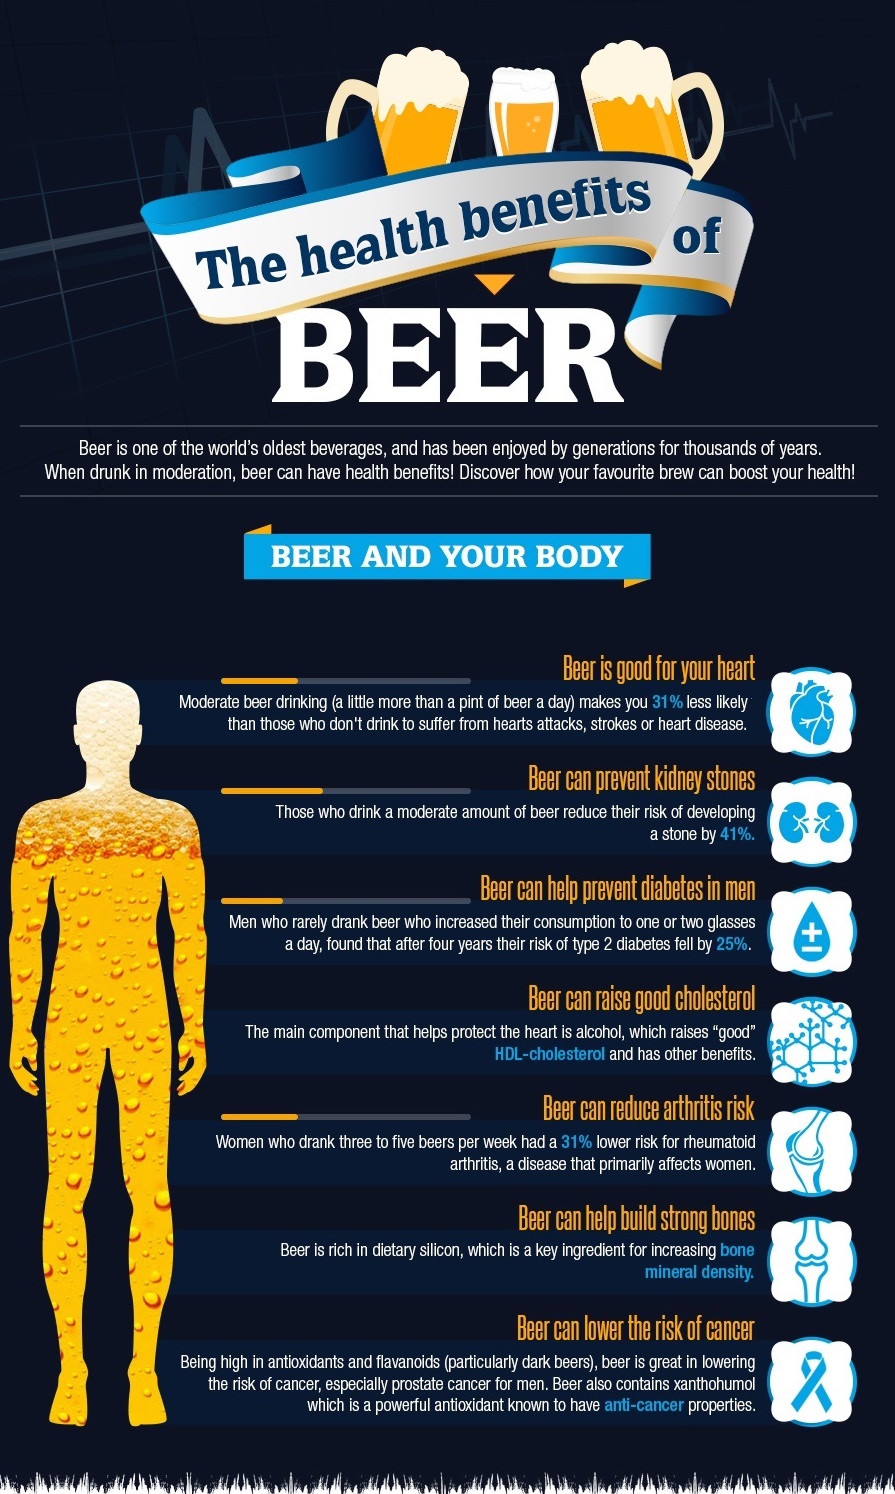 Health-Benefits-of-Beer-Infographic 3.jpg